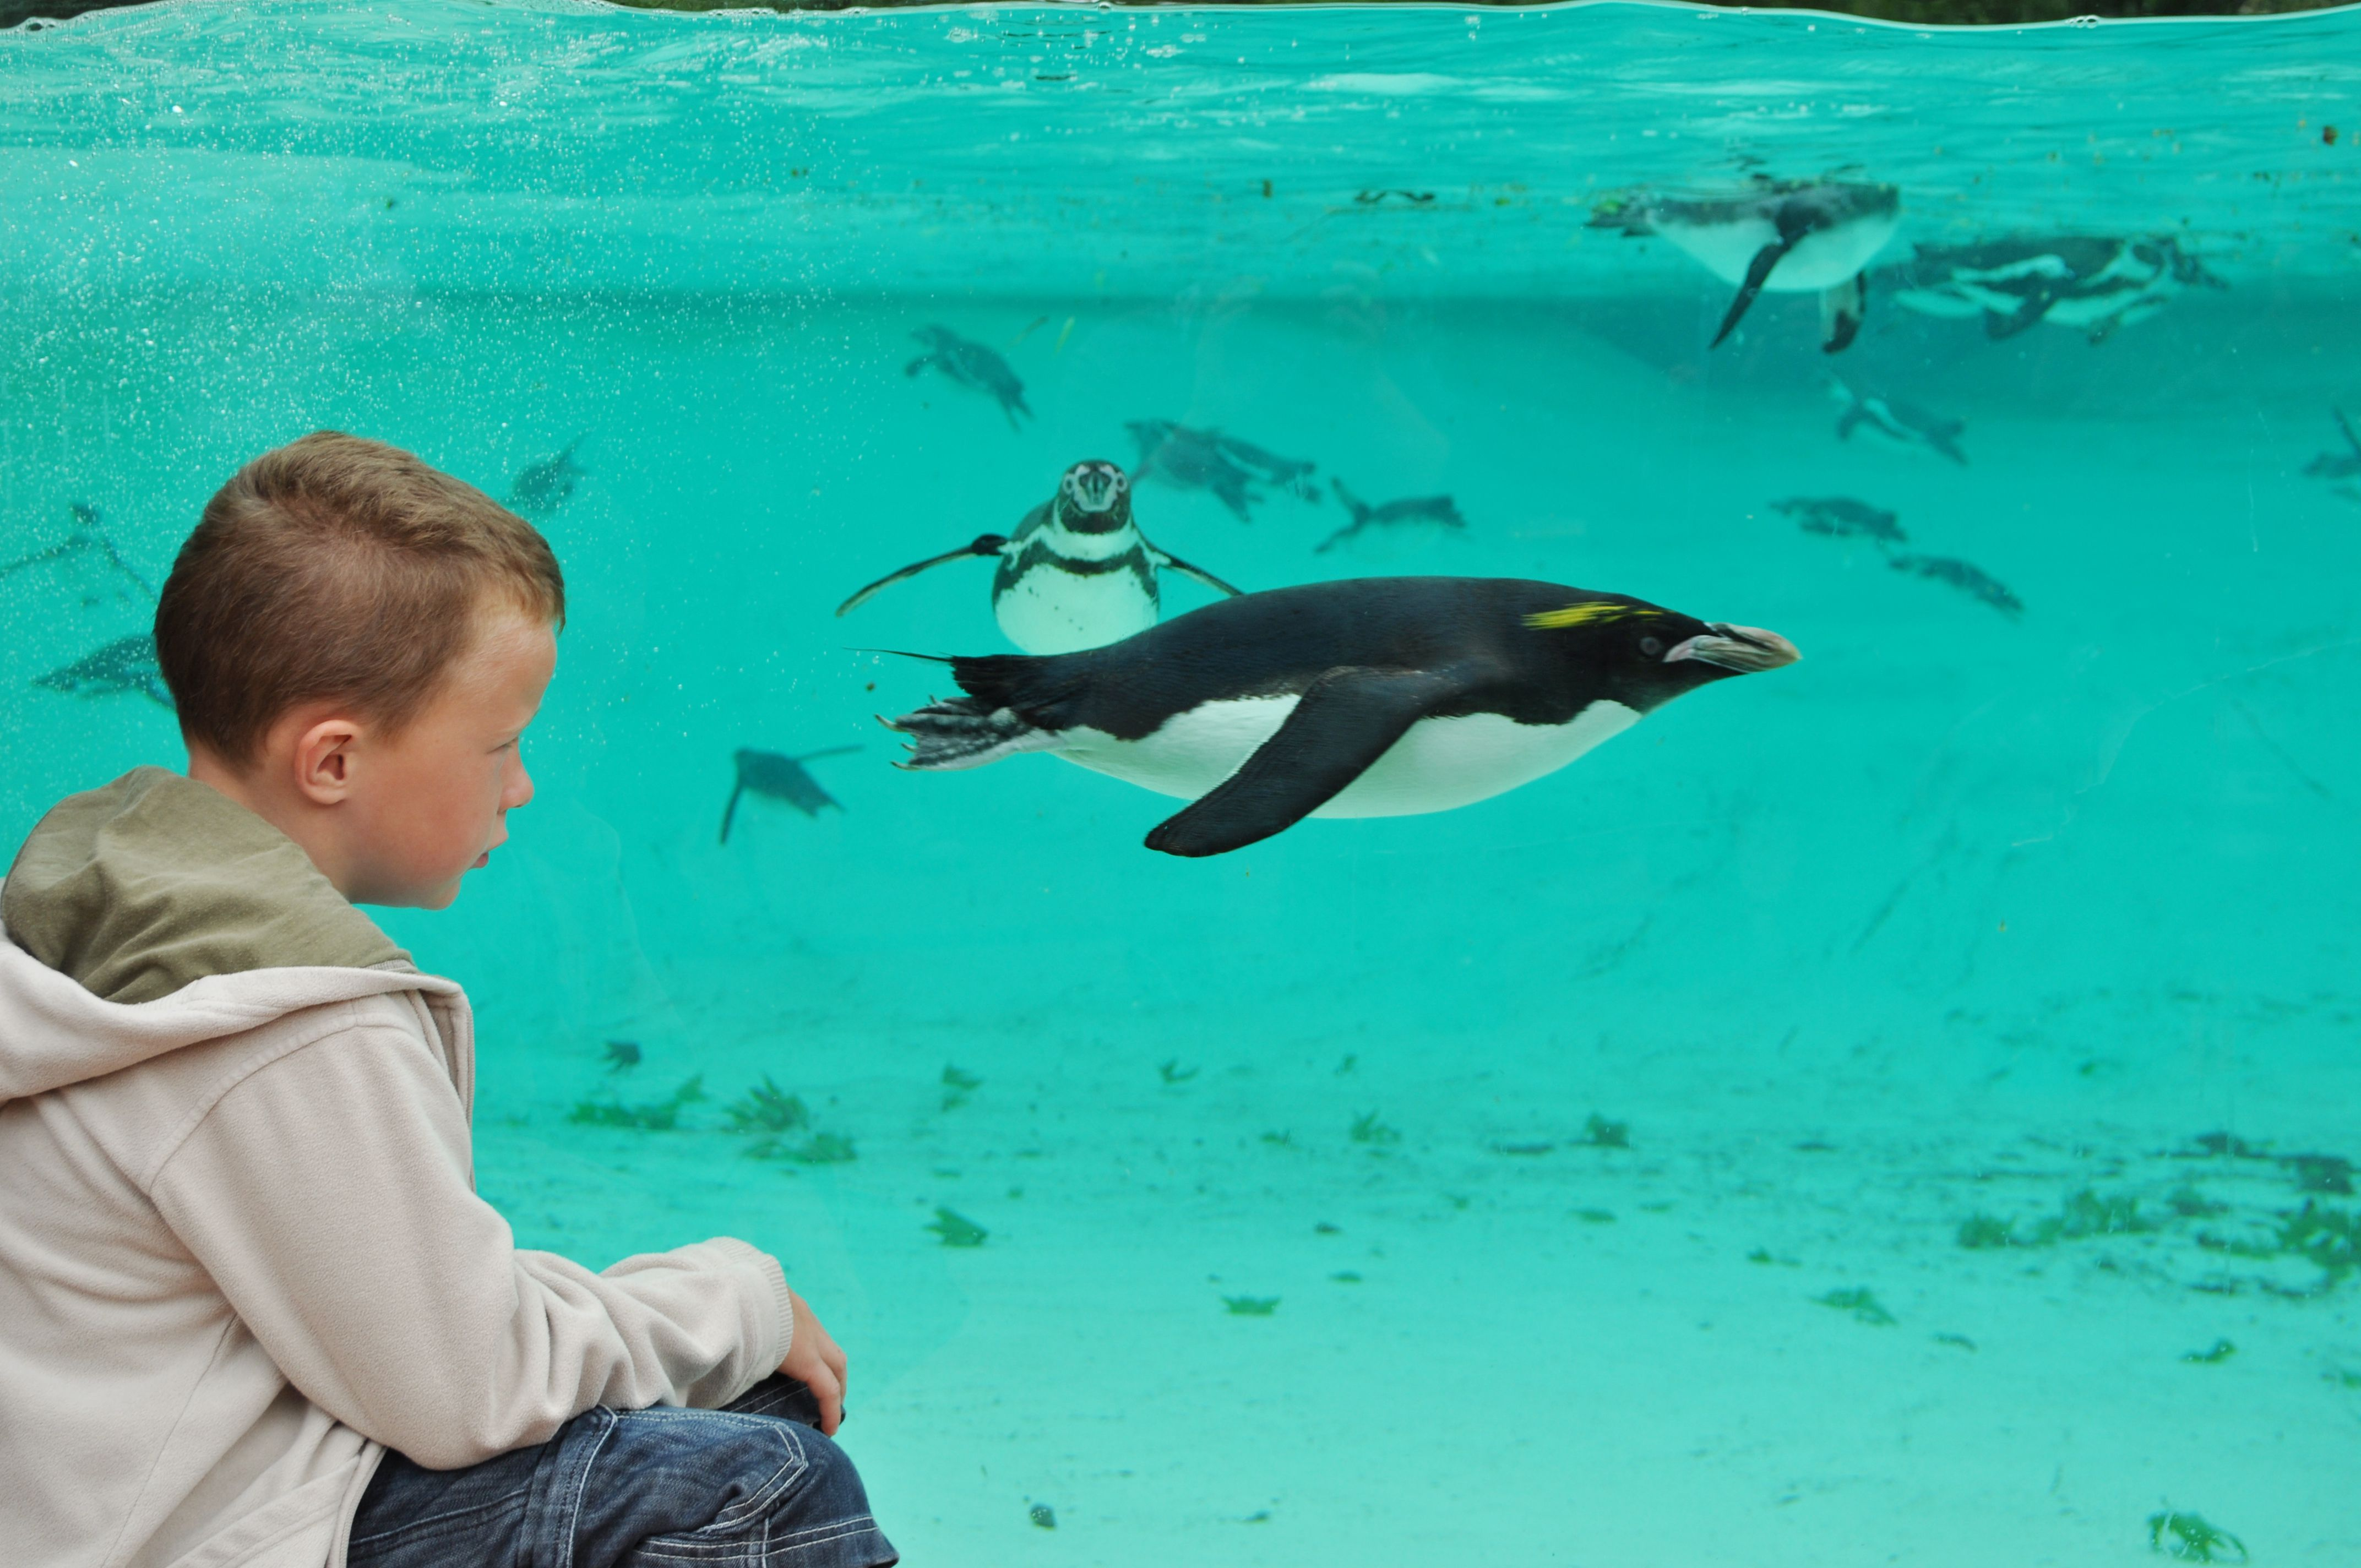 Find Out More About ZSL London Zoo